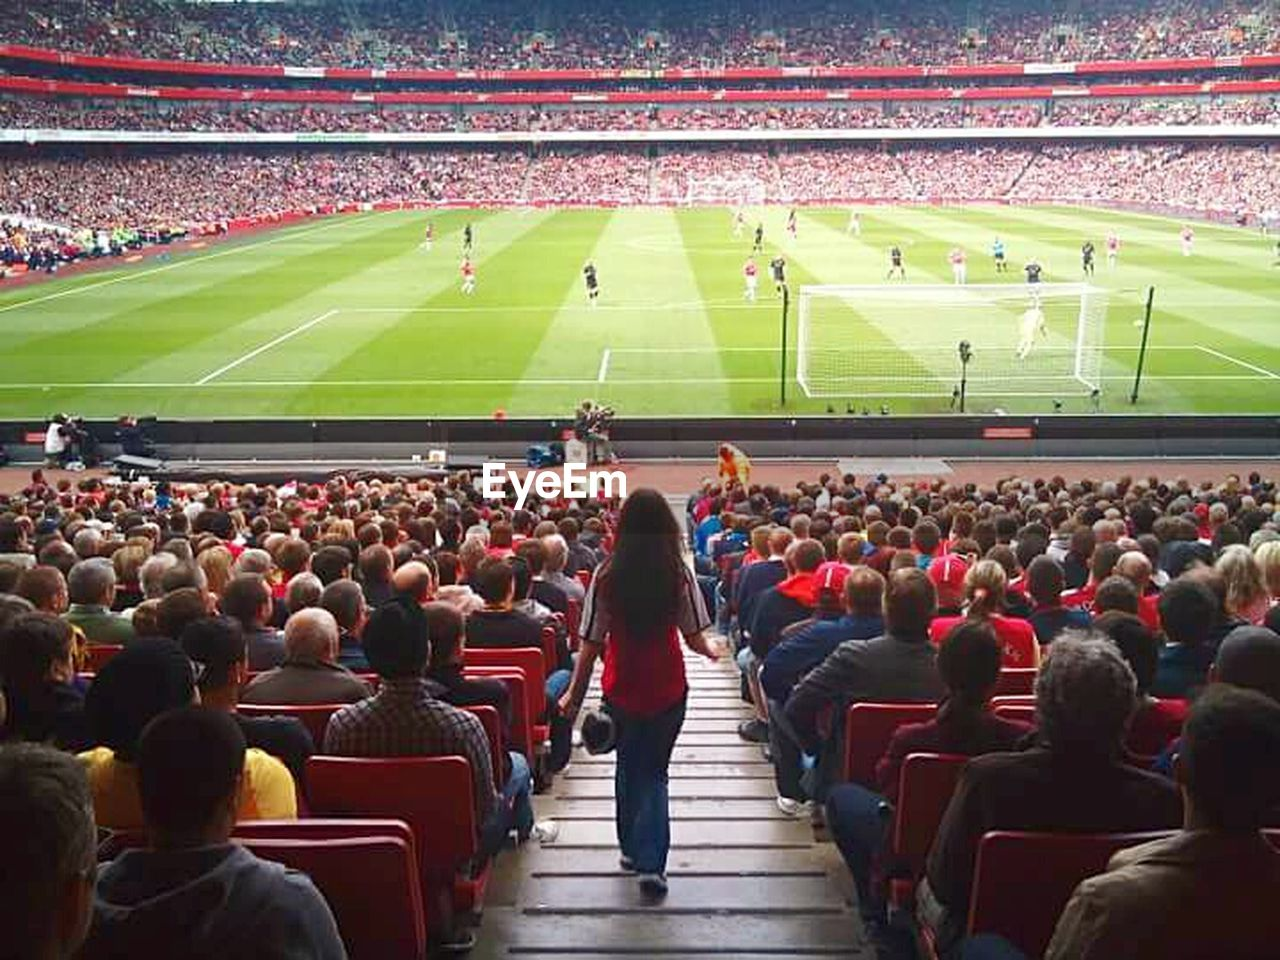 stadium, spectator, crowd, fan - enthusiast, audience, large group of people, event, sports team, grass, soccer, outdoors, togetherness, day, cheering, american football - sport, people, adult, adults only